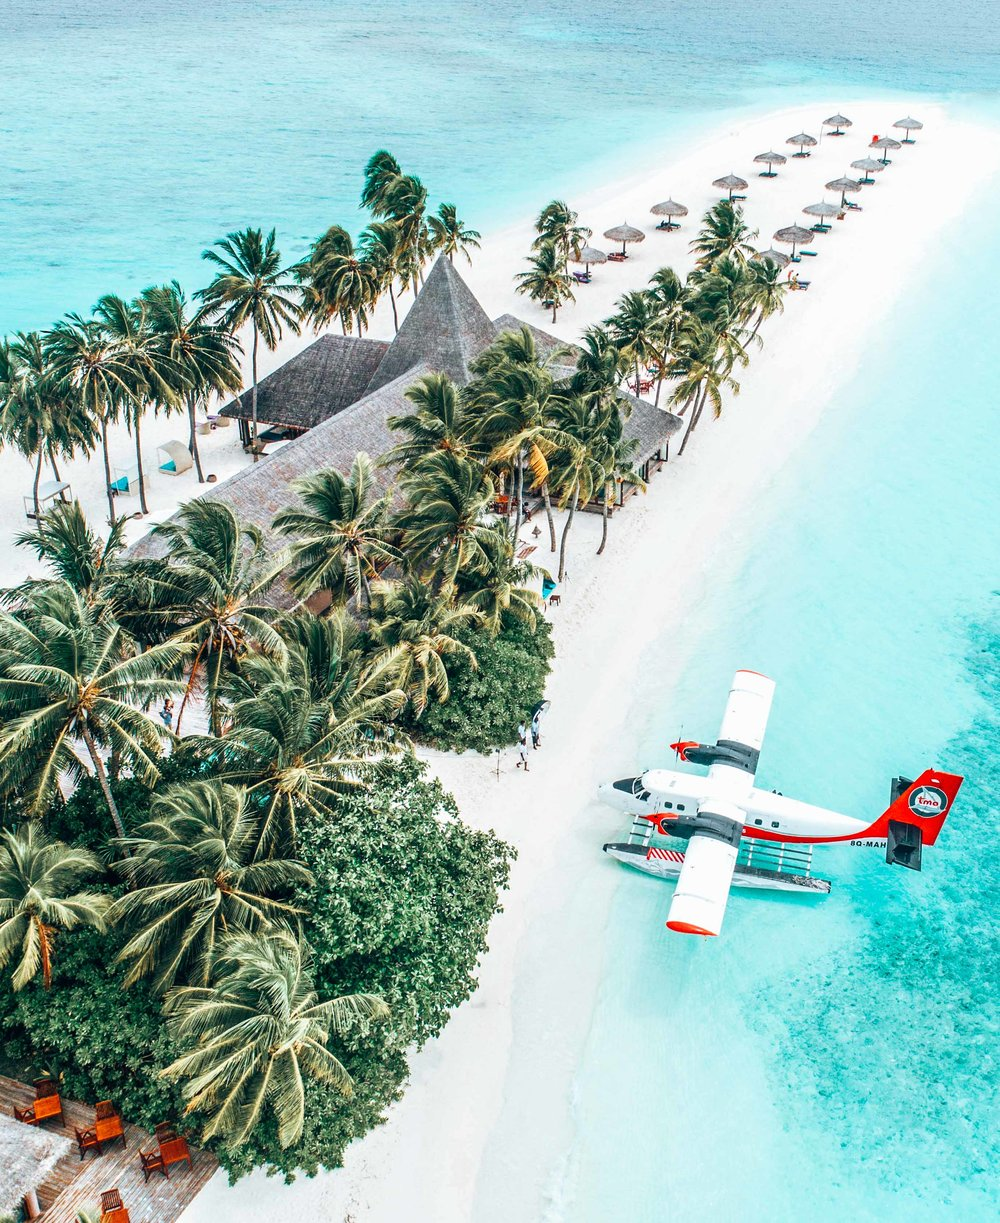 9 Tips and Resources to Travel Ethically 9 Tips and Resources to Travel Ethically, plane on beach island travel